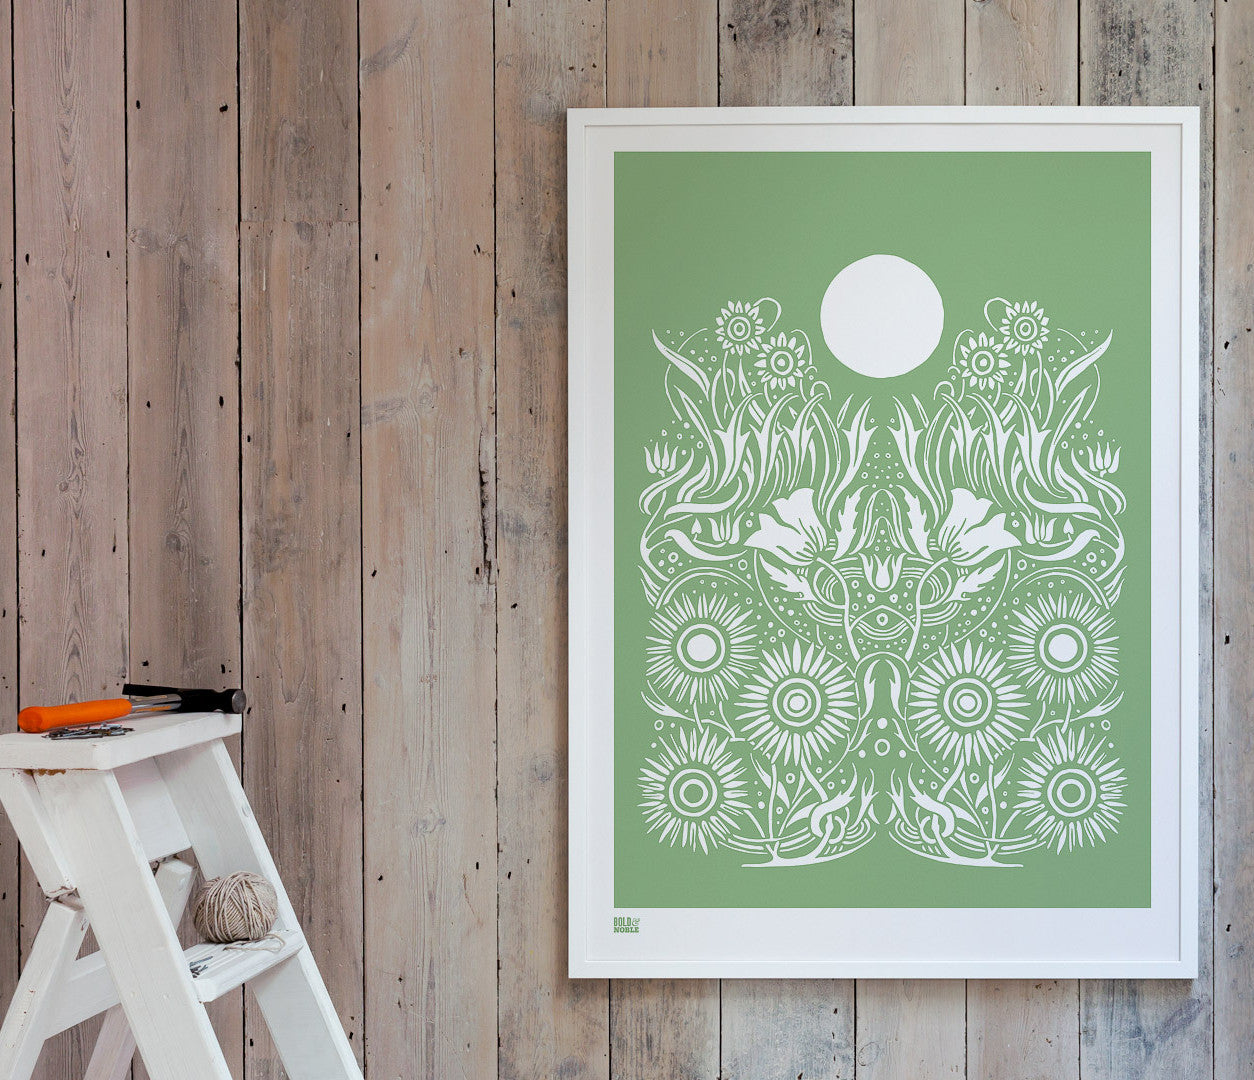 Wall Art ideas: Economical Screen Prints, Moonlight Print in Light Sage Green